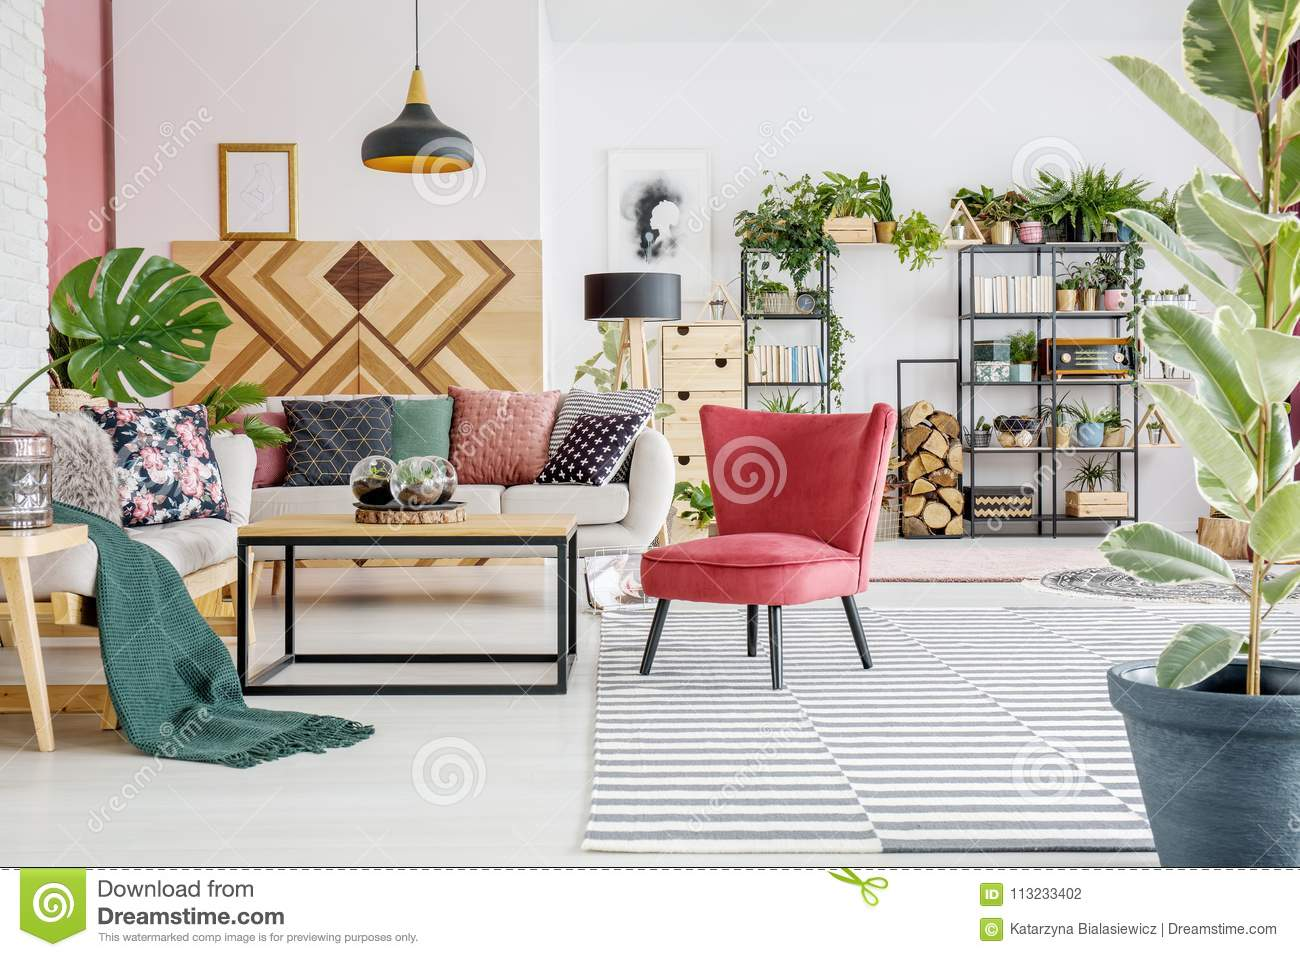 Surprising Green And Red Living Room Stock Photo Image Of Floral Gmtry Best Dining Table And Chair Ideas Images Gmtryco